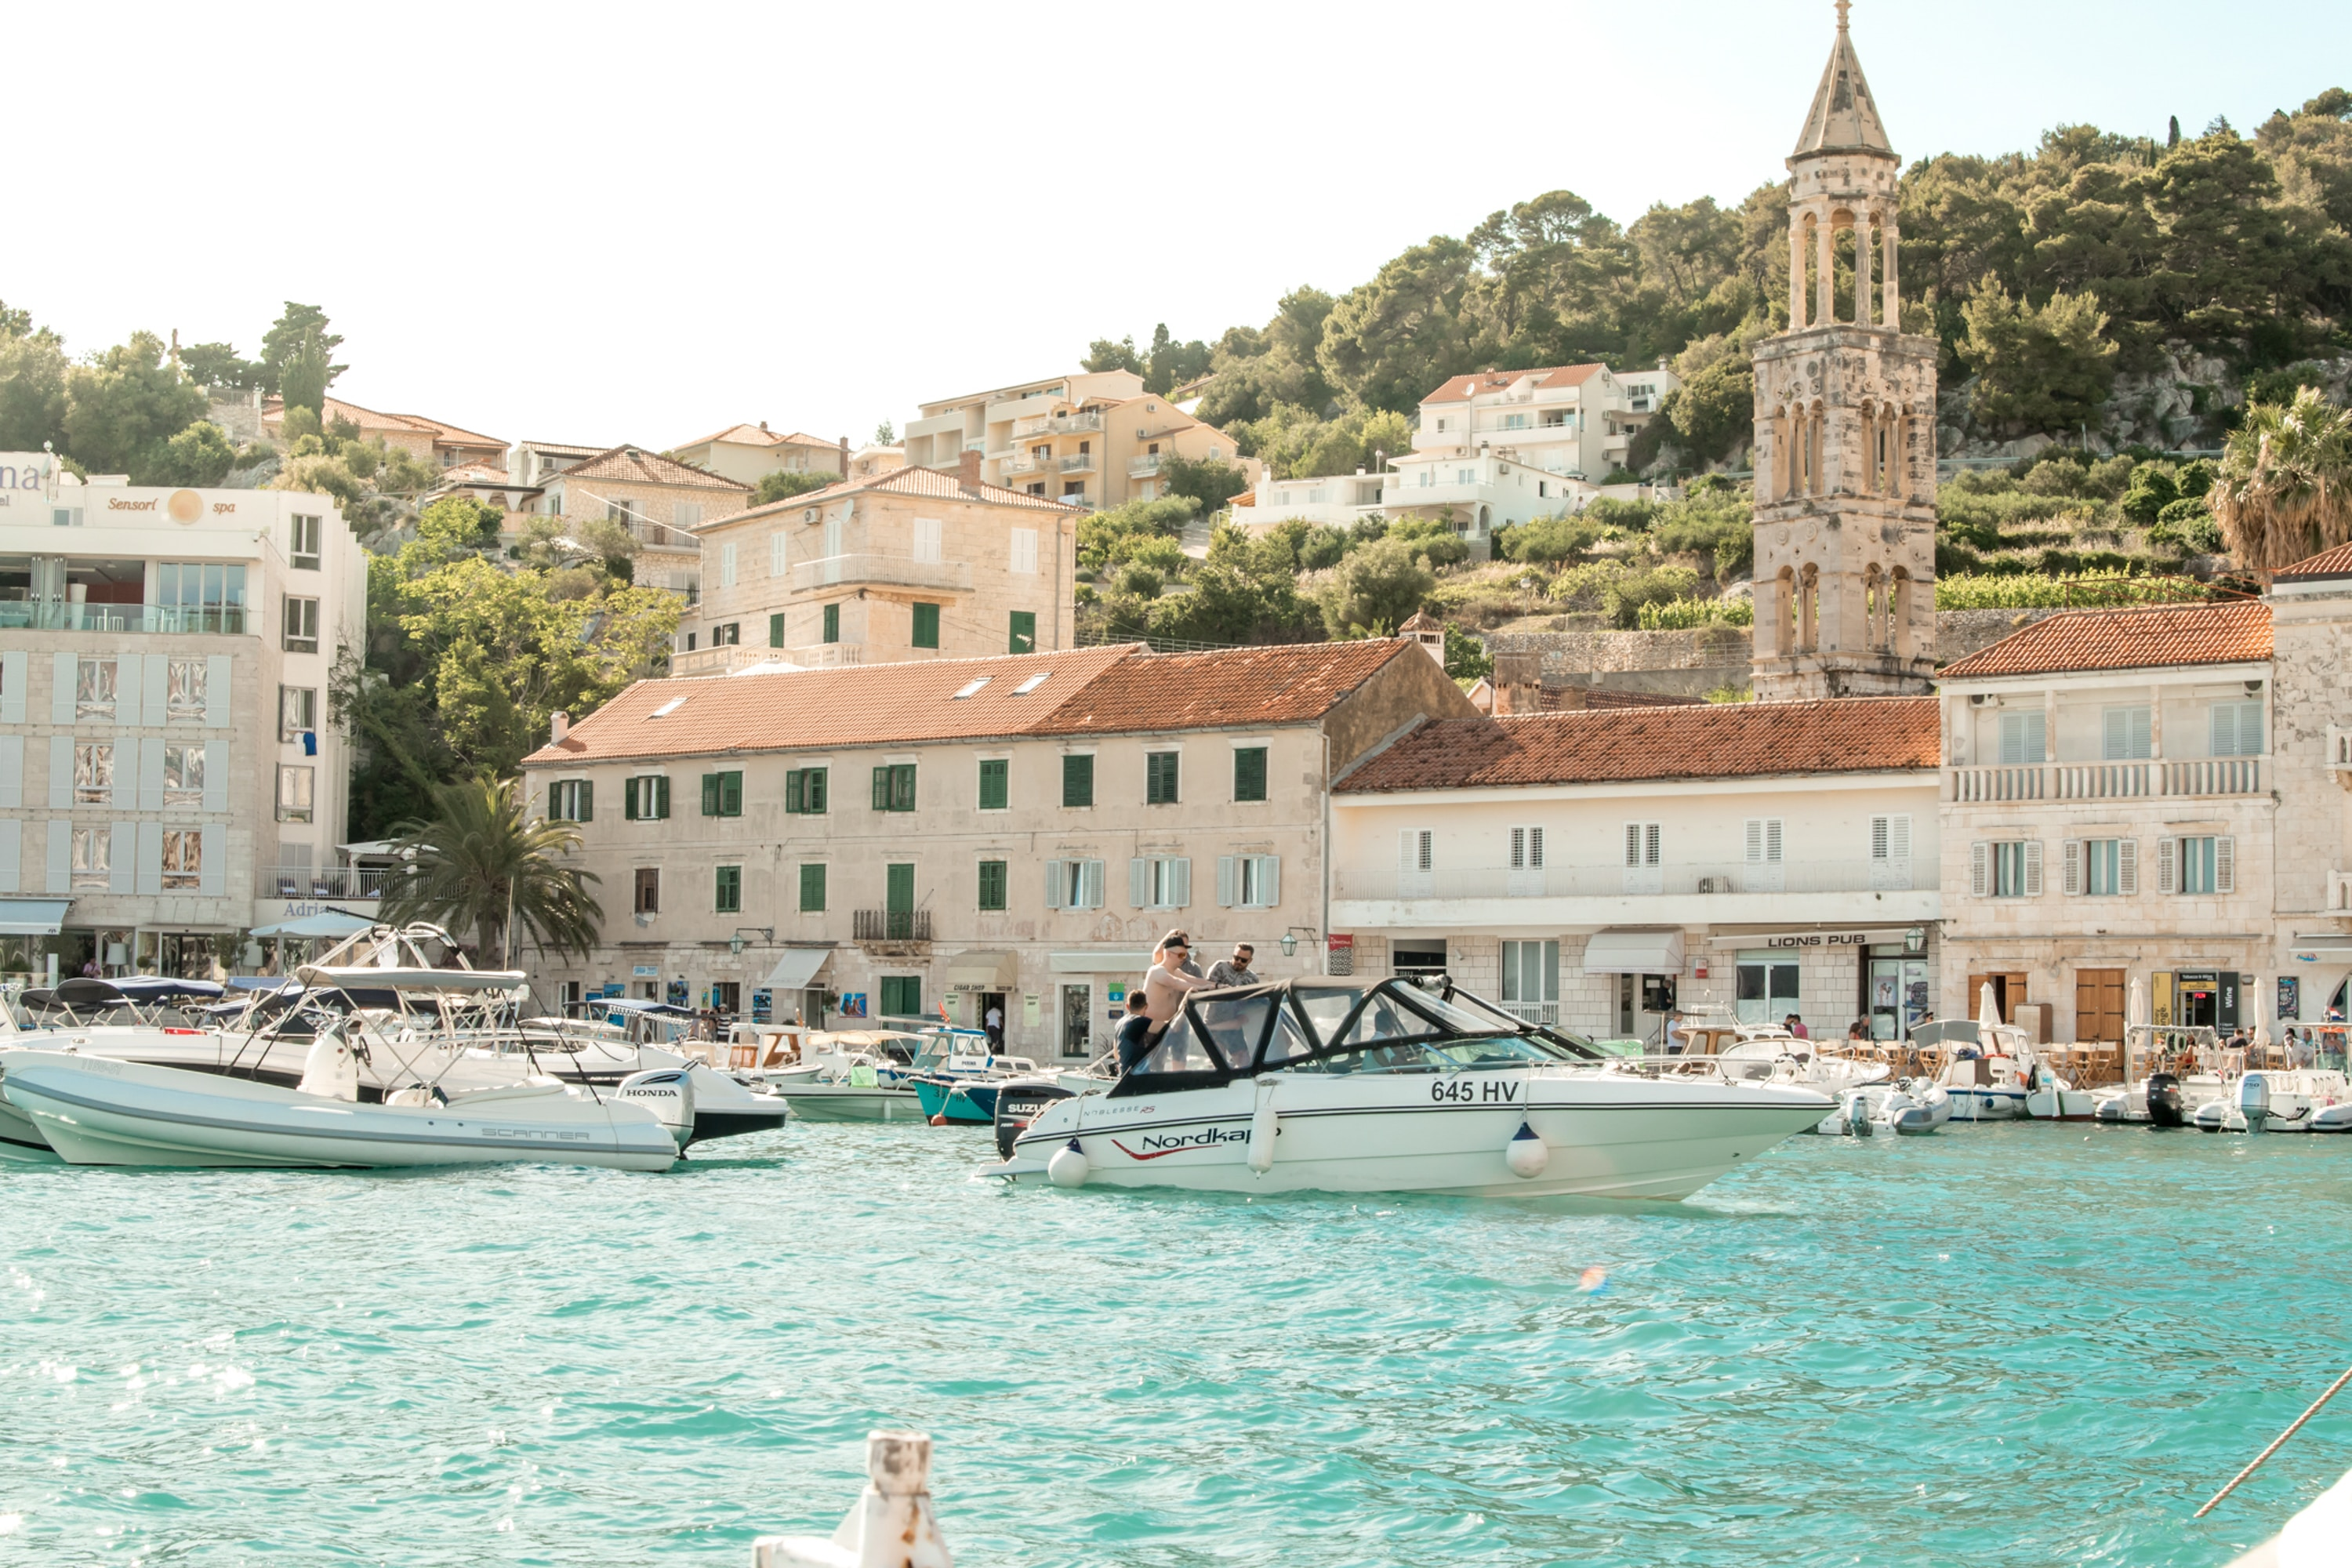 People on the boats in Hvar harbor in Croatia.